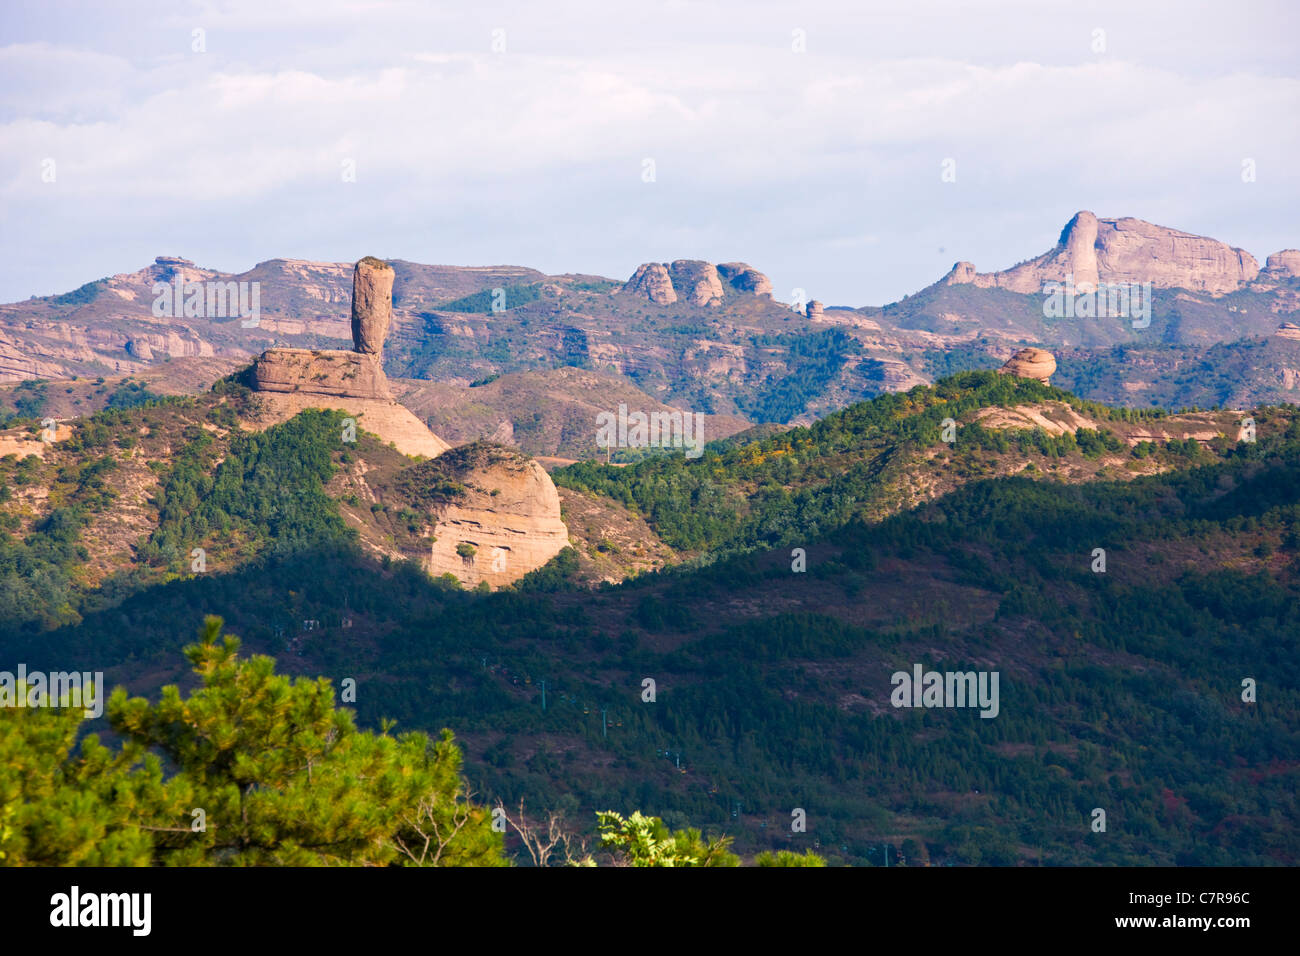 Bangchui (Wood Club) Mountain, Chengde, Hebei Province, China - Stock Image